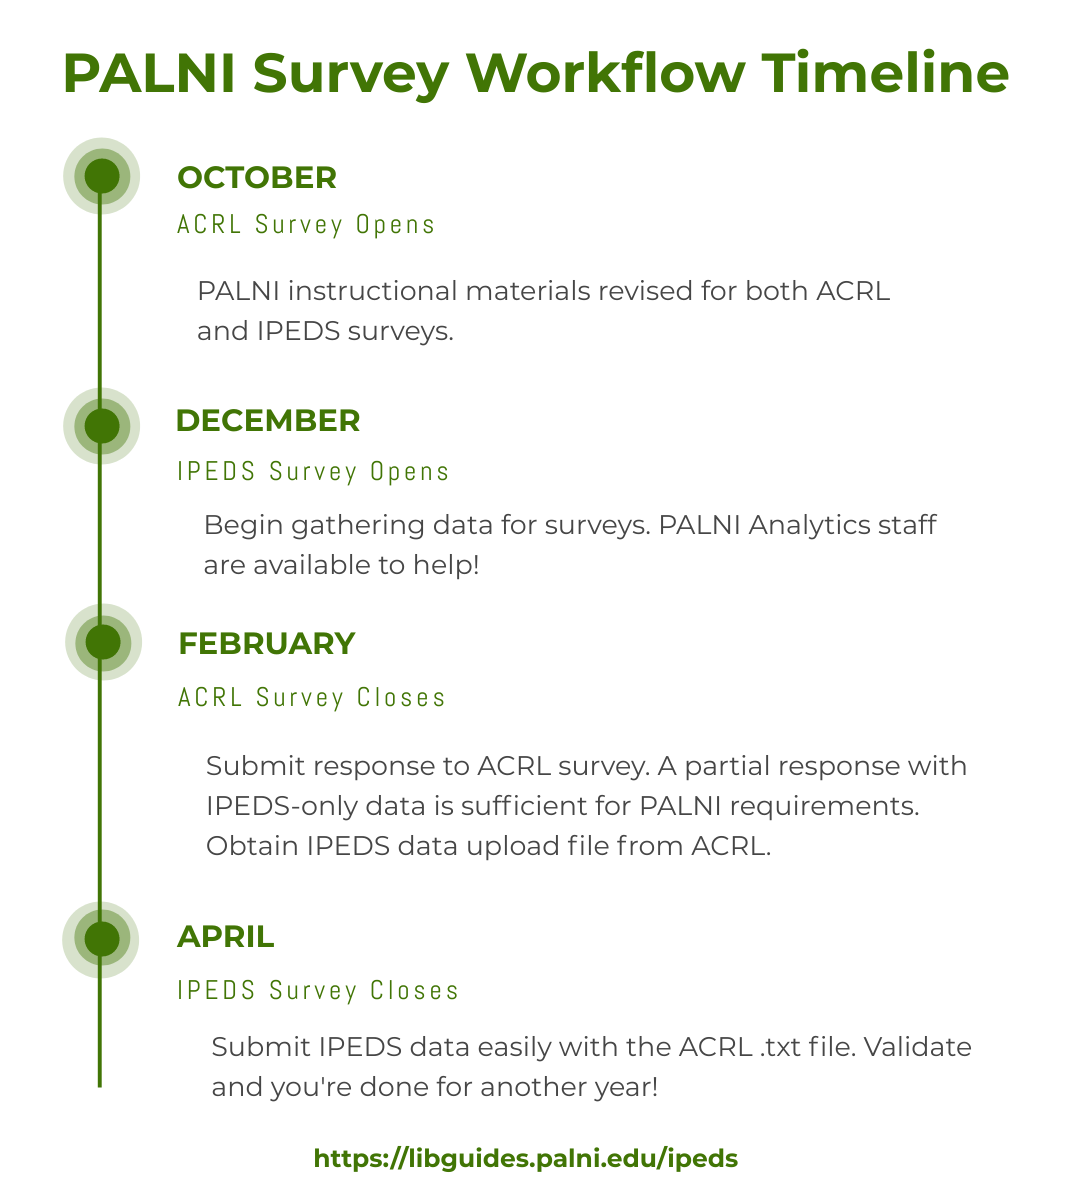 graphic of timeline for survey workflow